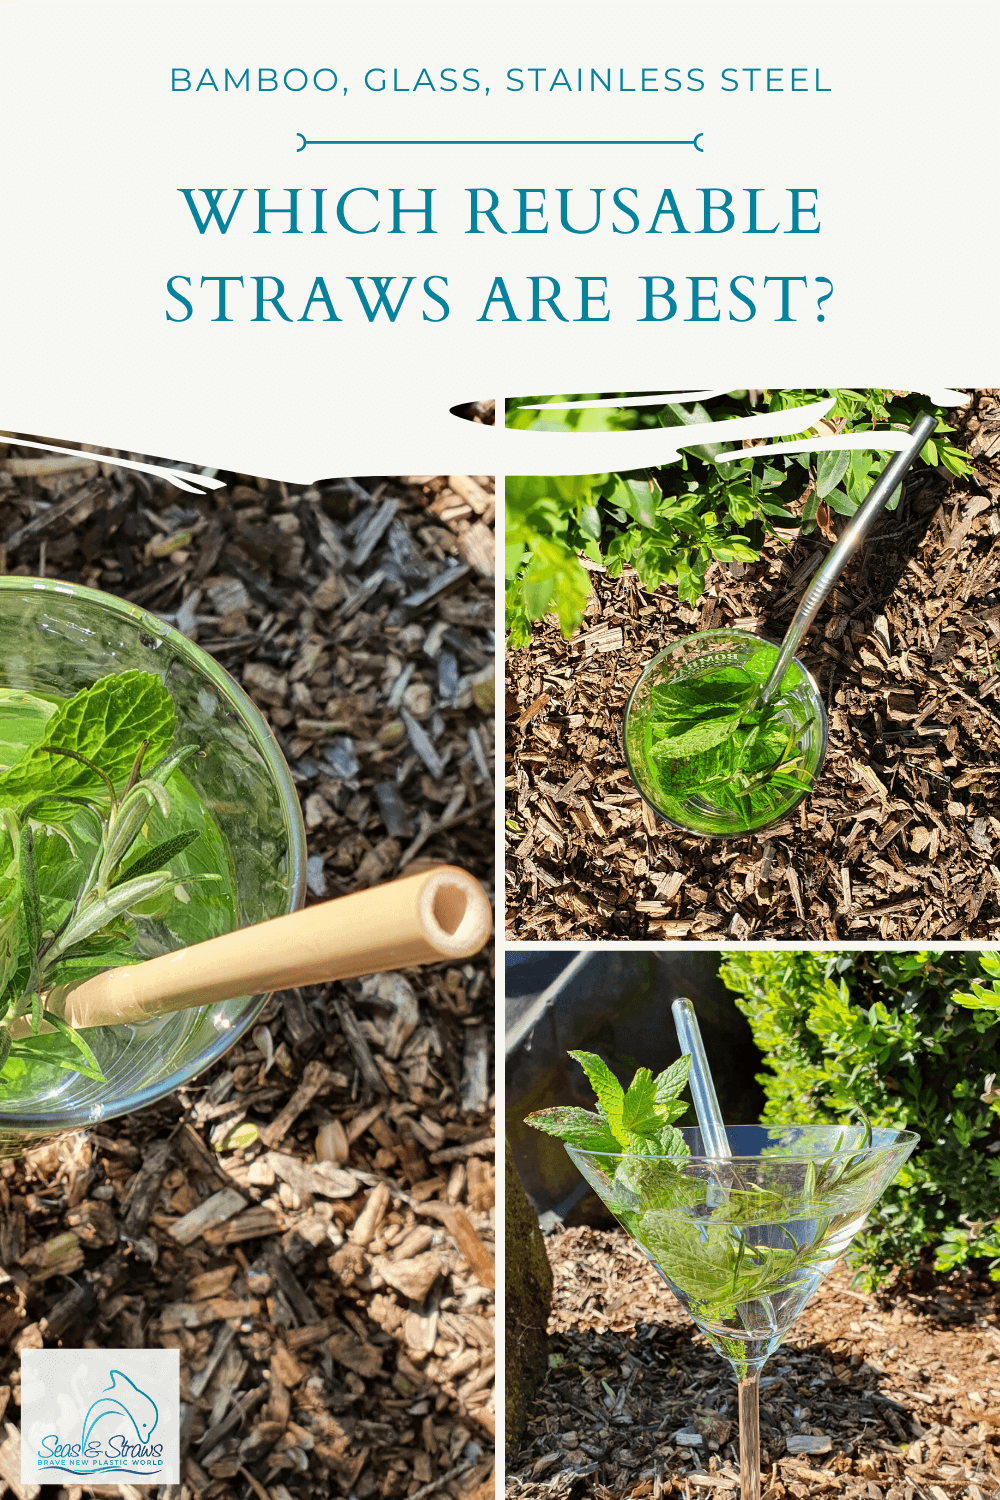 Bamboo, glass or stainless steel - which reusable straws do you prefer? - Seas & Straws